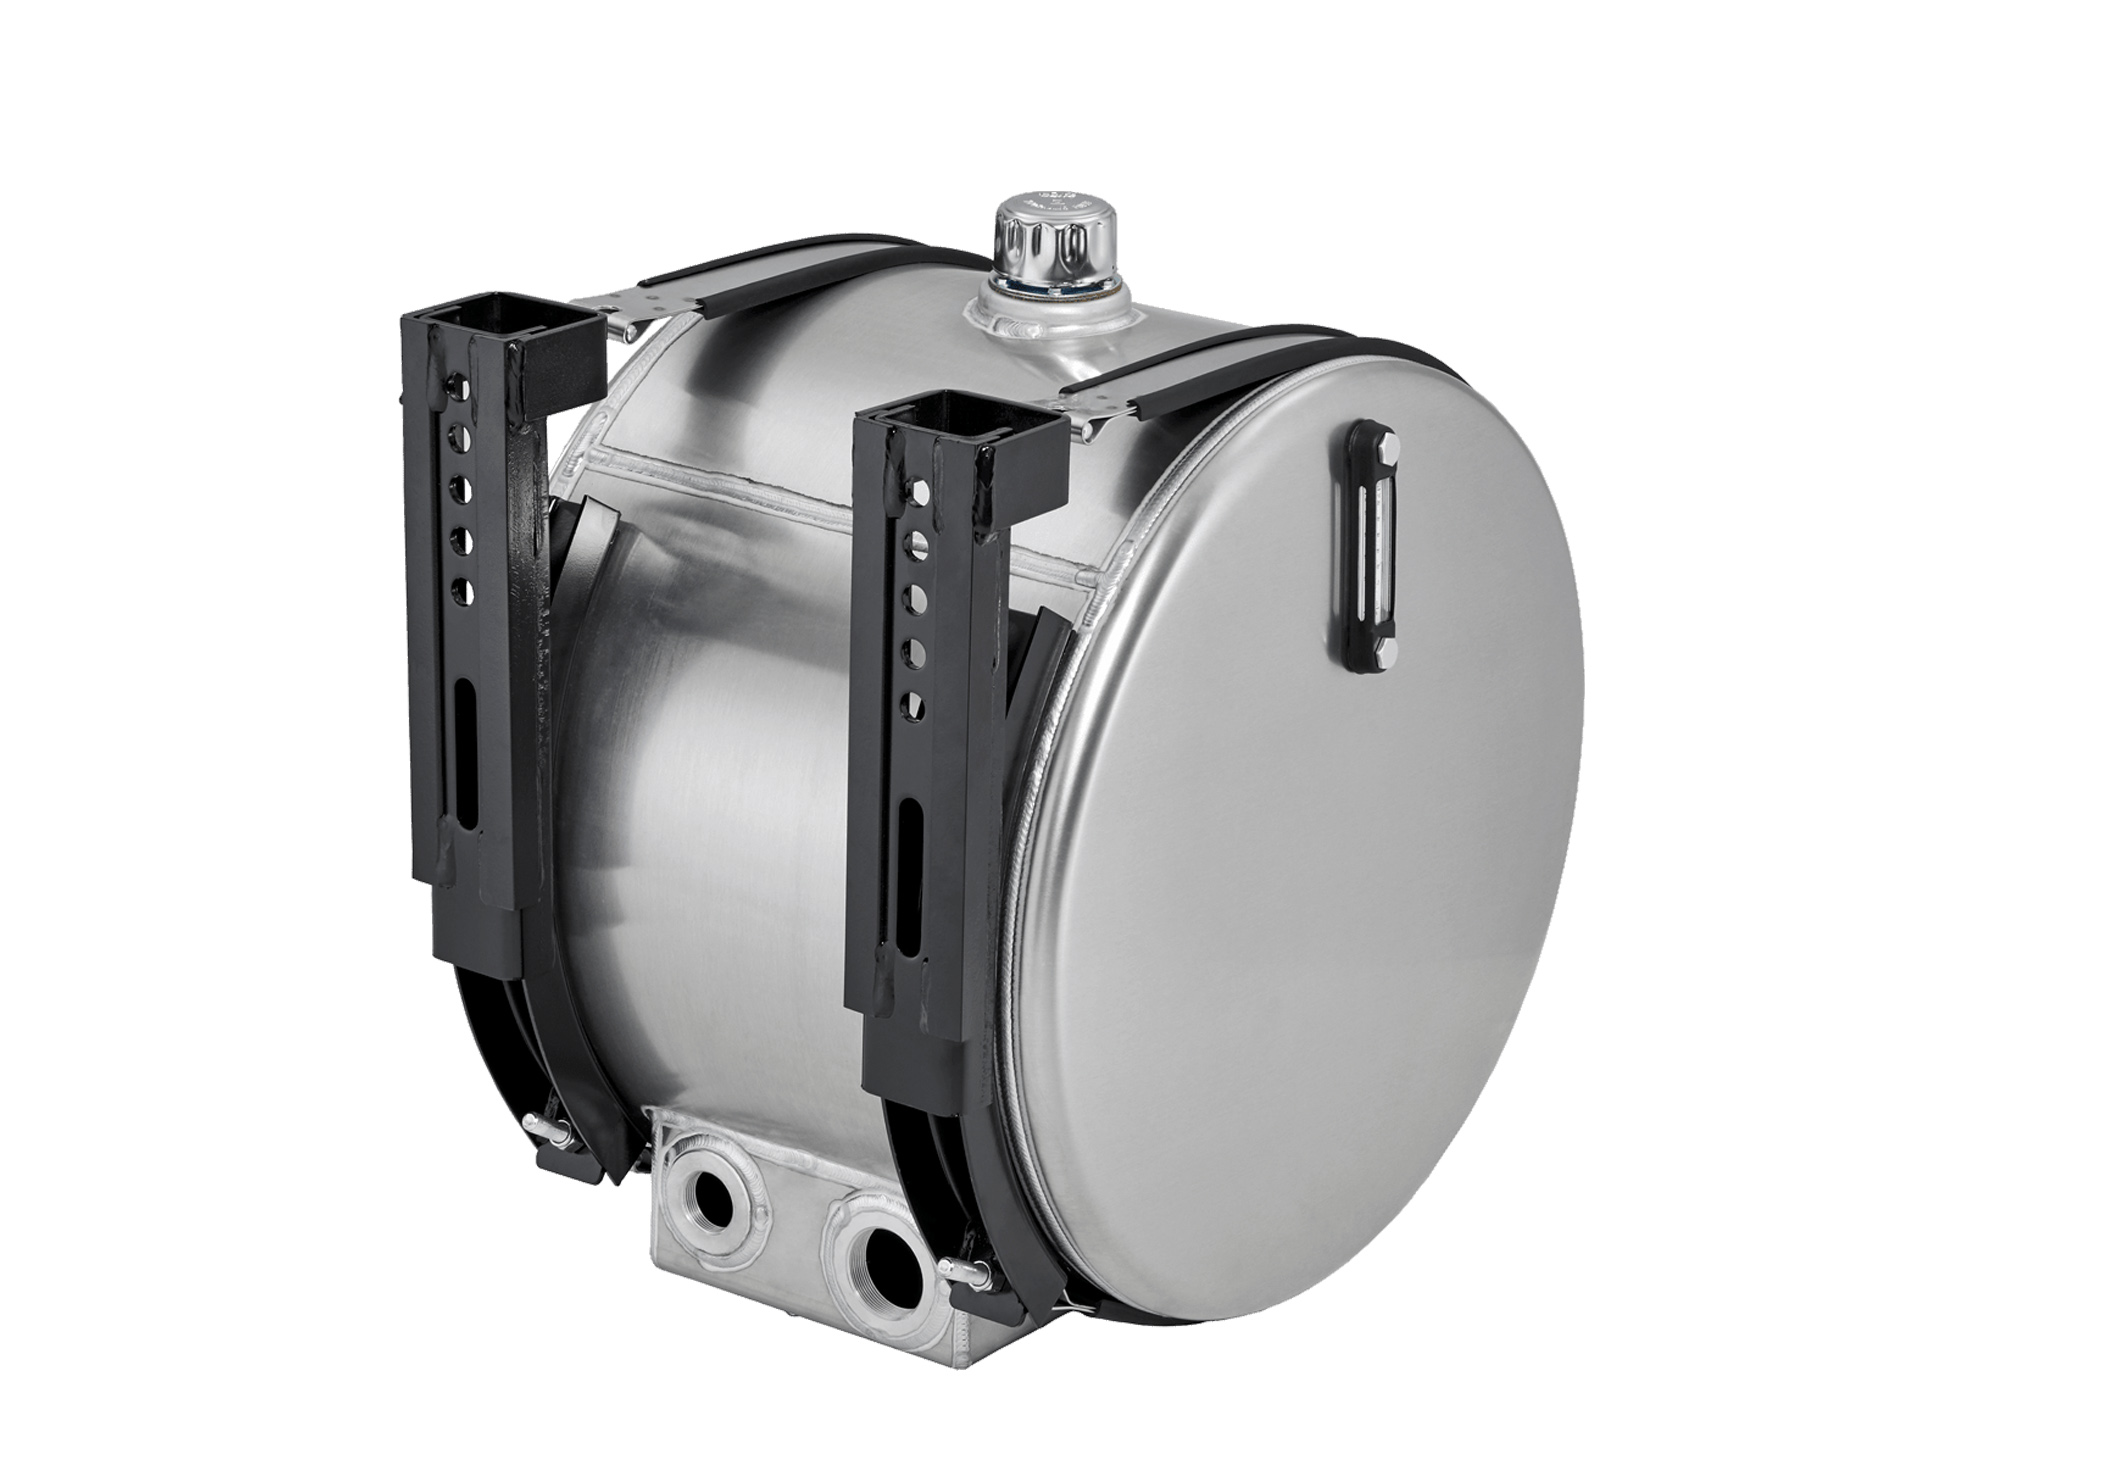 Saddlemount-Tanks - Aluminum-Saddlemount-35-Gallon